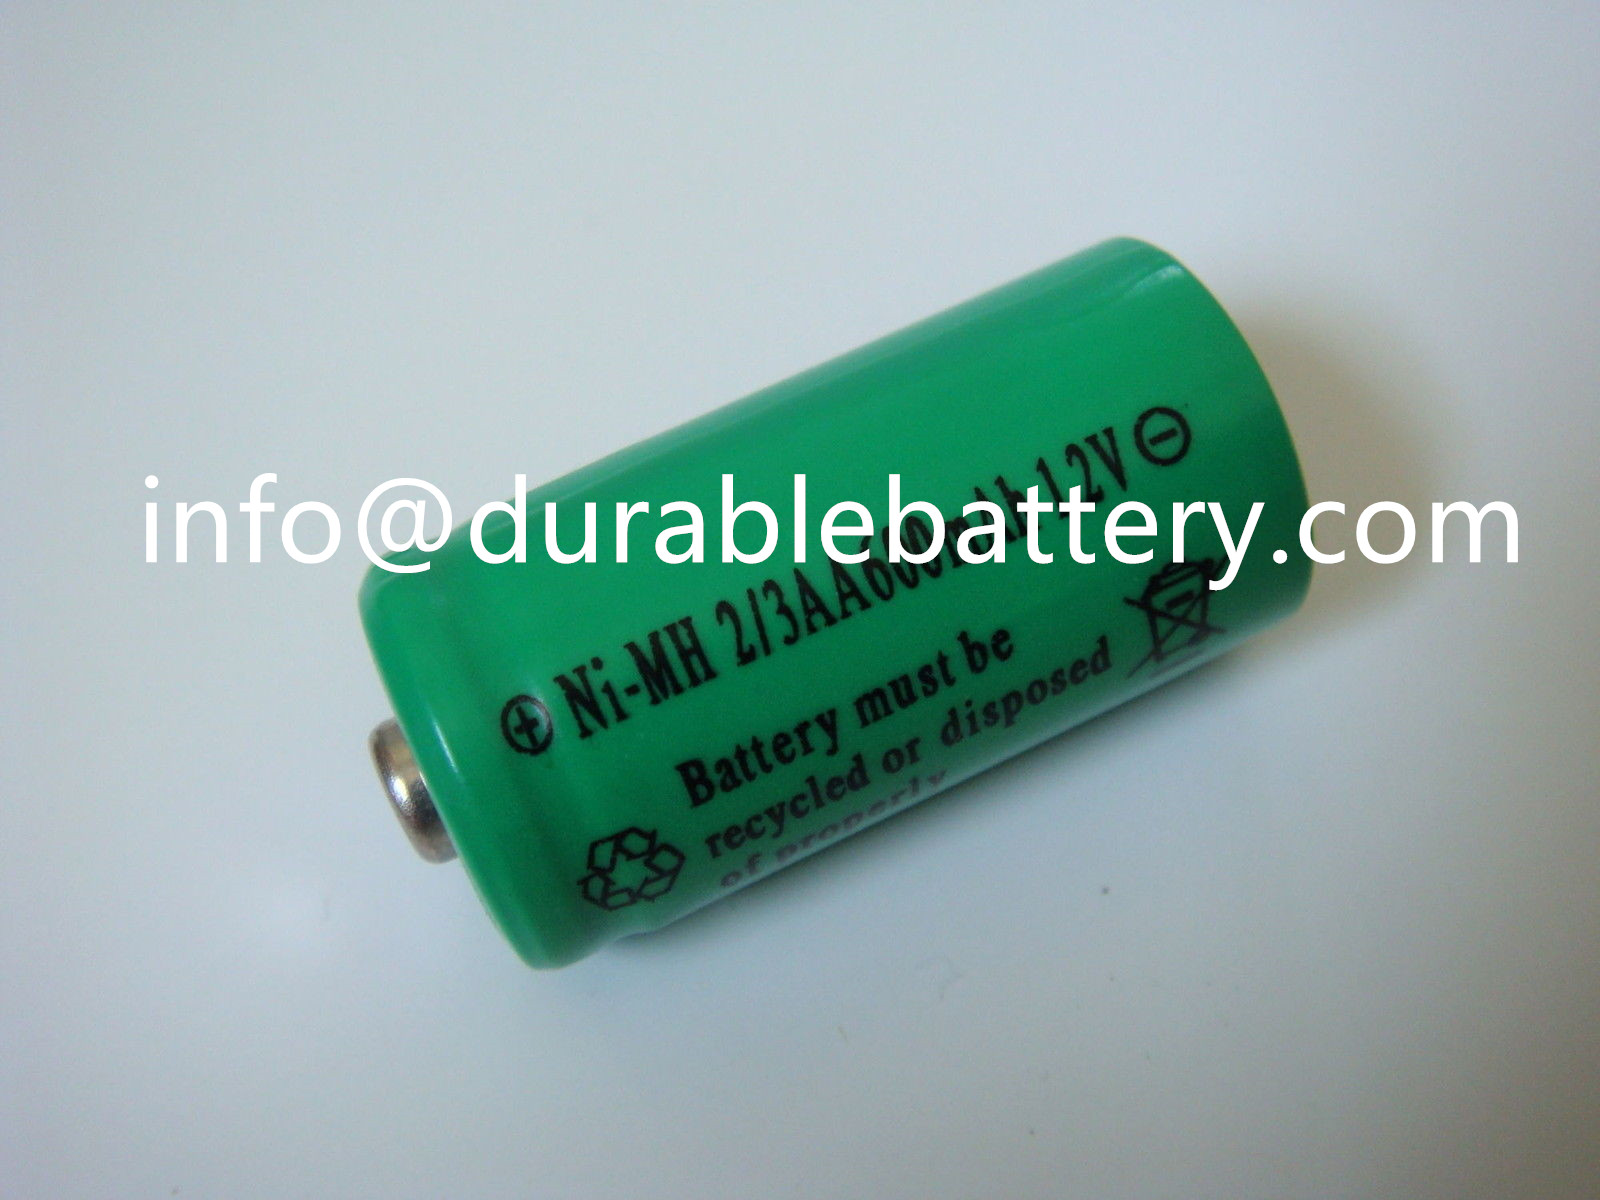 rechargeable battery for toys nimh battery 1.2v 2/3aa 600mah used for solar light